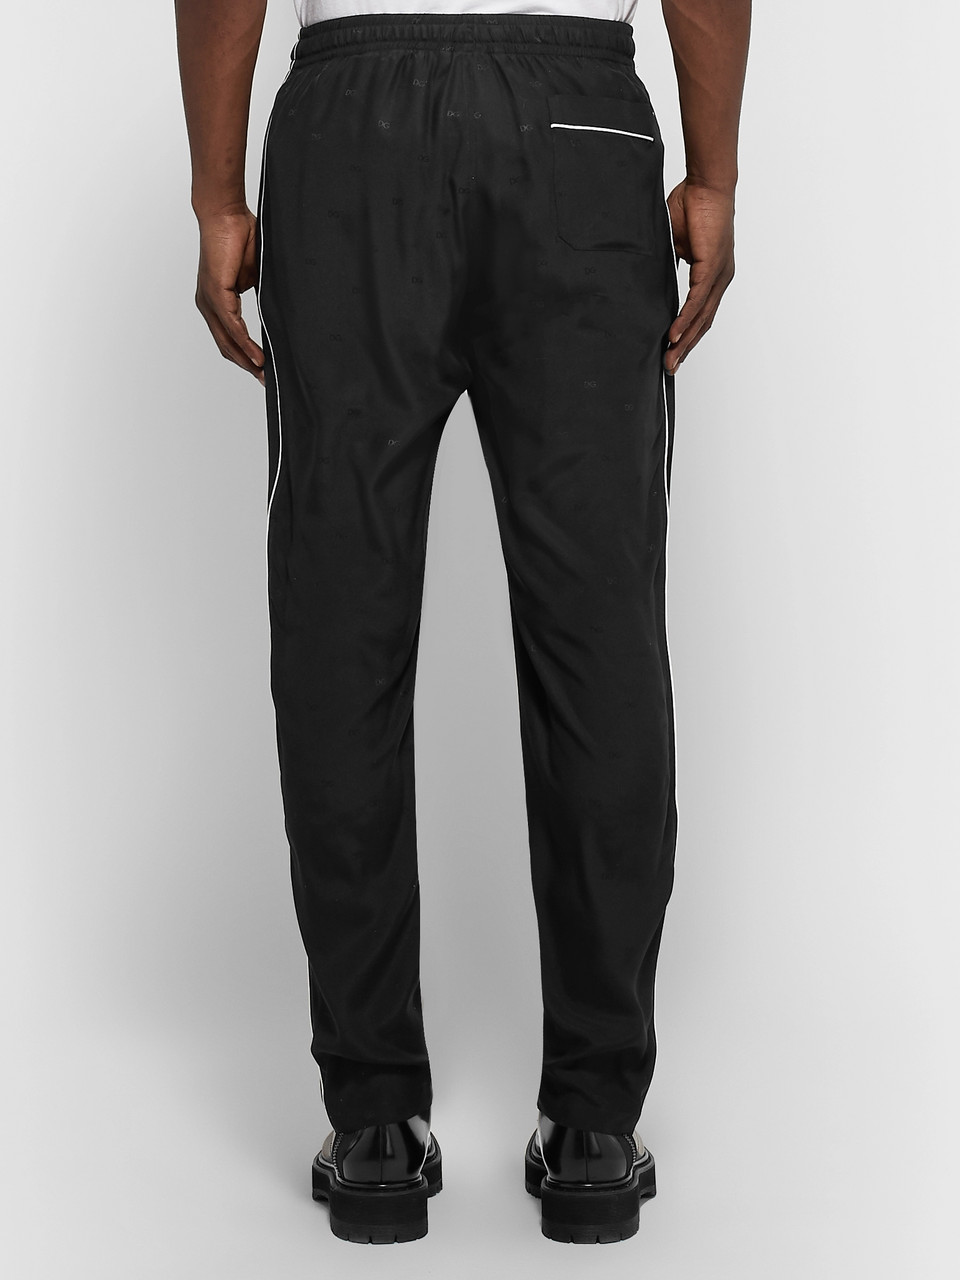 Dolce & Gabbana Piped Silk-Jacquard Drawstring Trousers